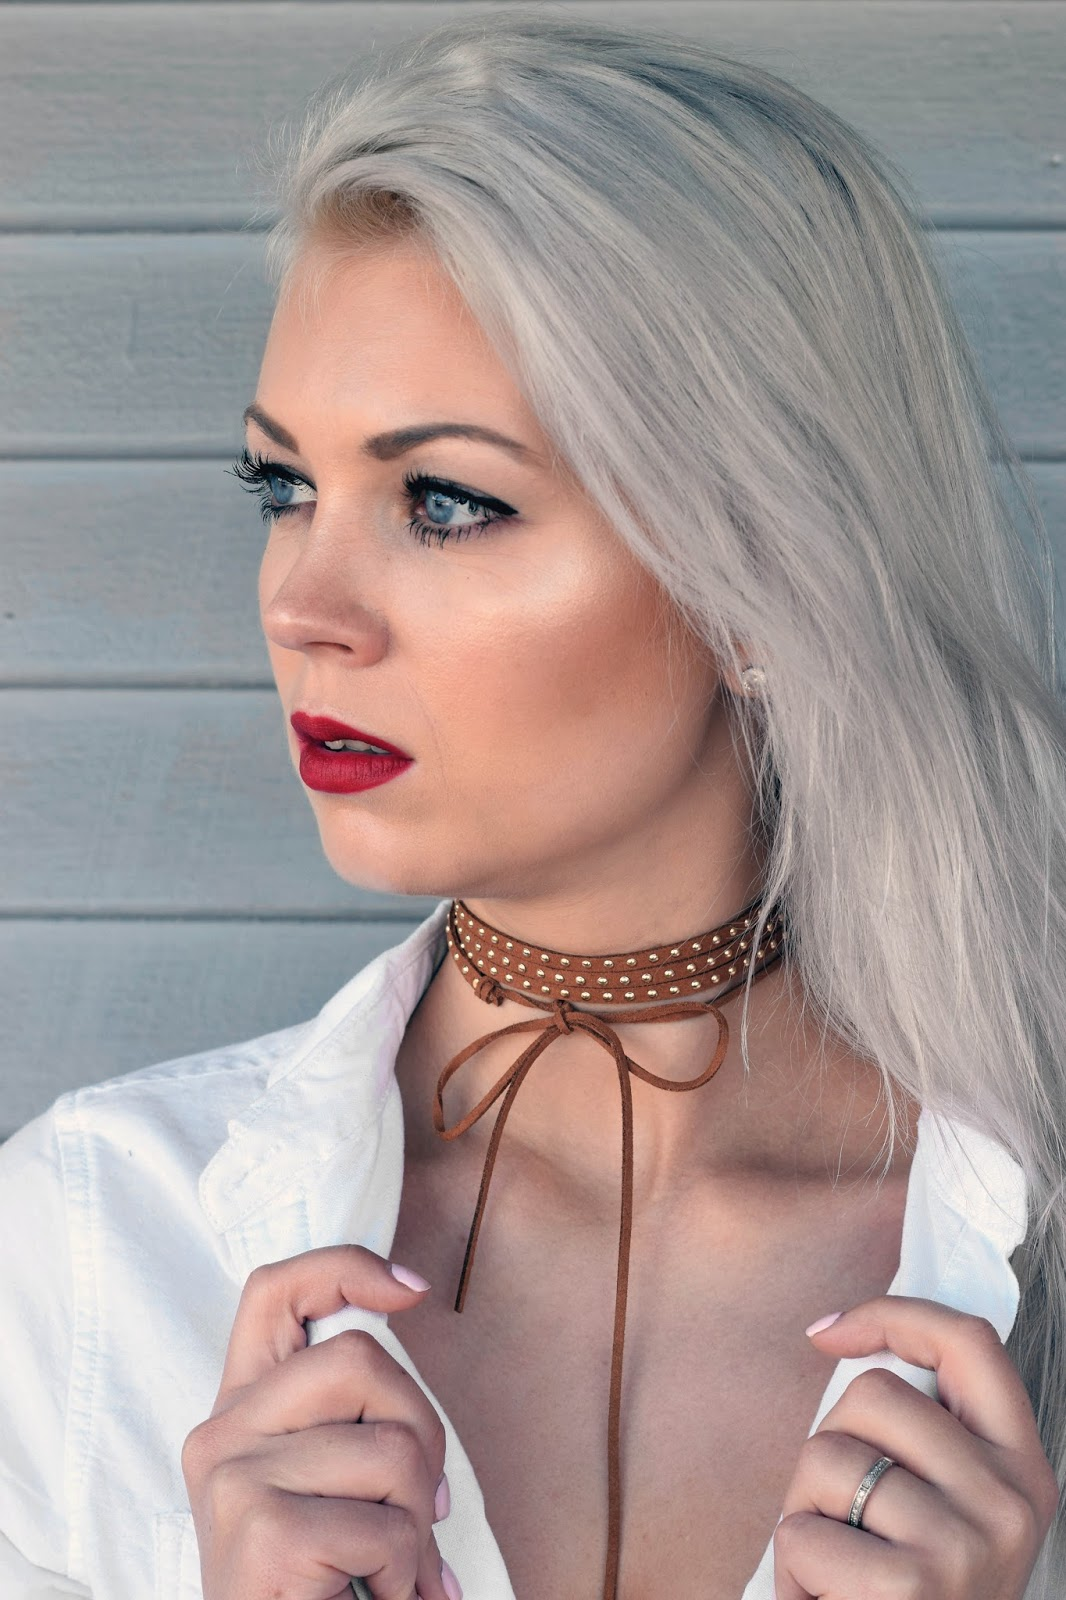 jules smith designs, jules smith, choker, how to wear choker, nye, germanblondy, german blondy